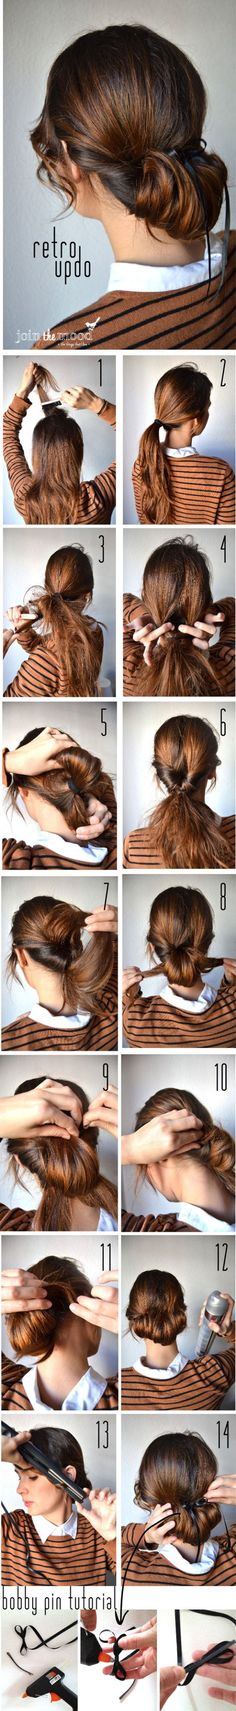 would like to learn how to do this do...quick fix for lazy hair day